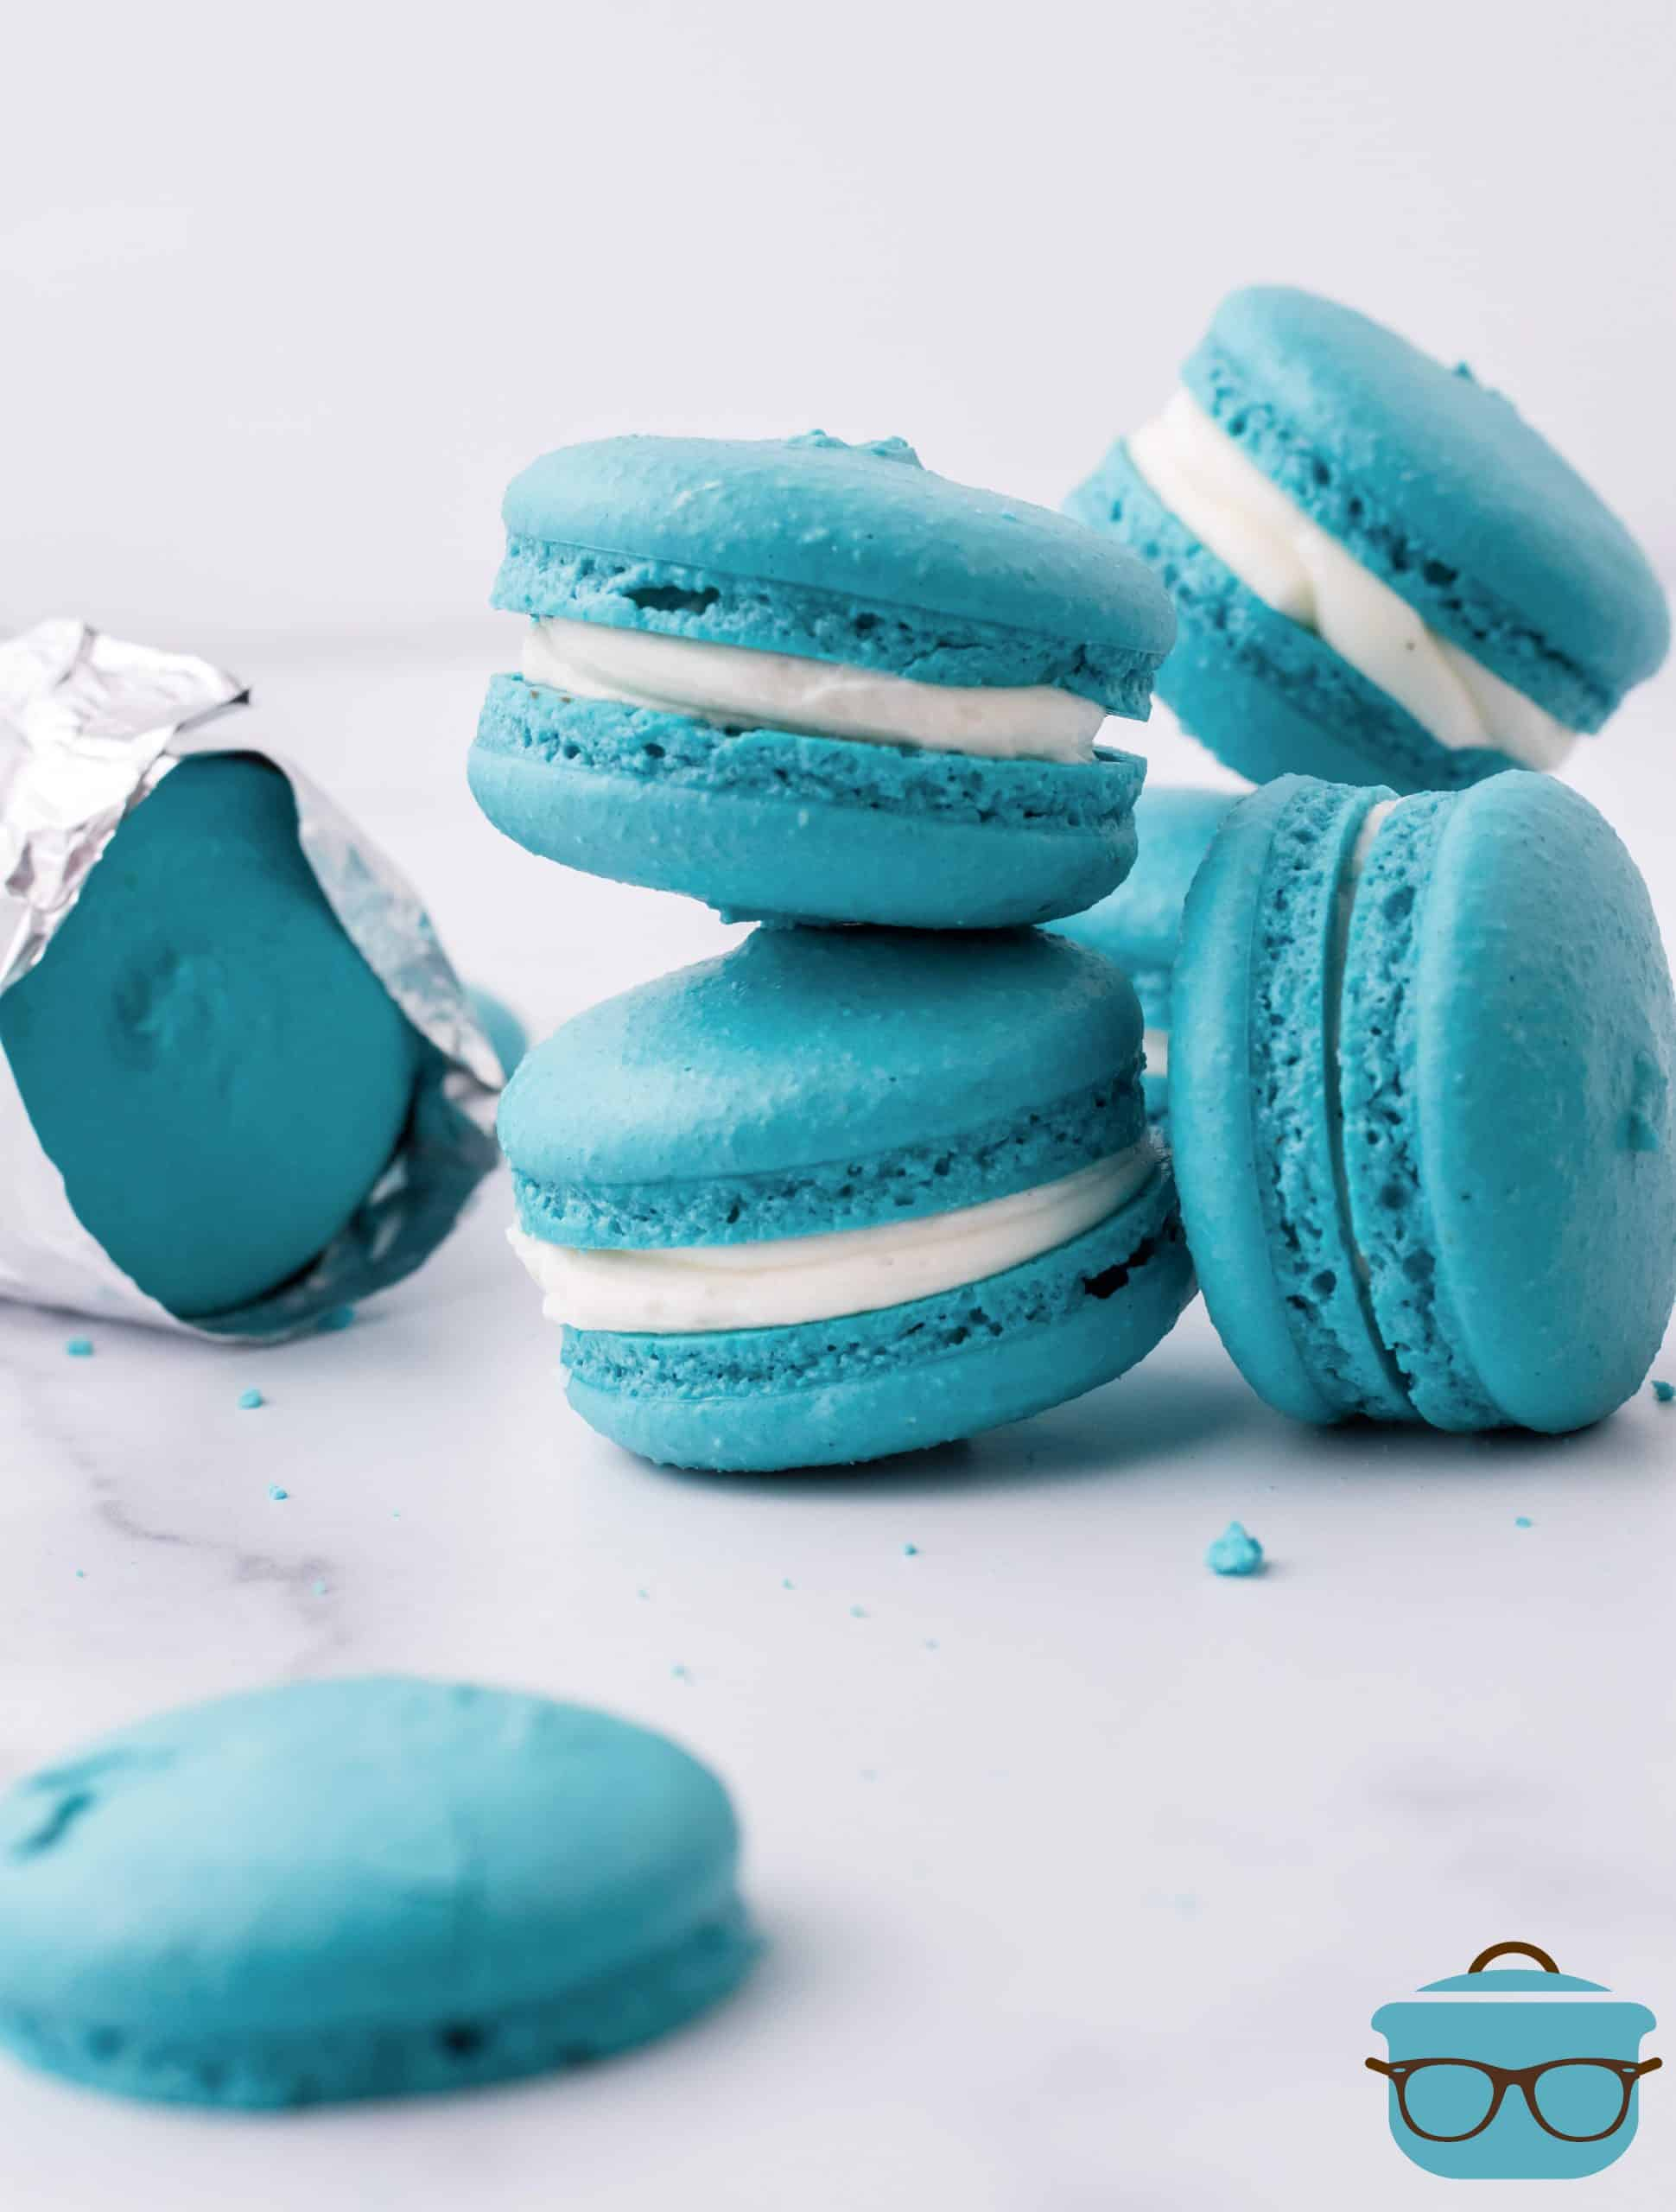 Teal Blue Macarons, stacked on a marble surface, Space Macaron, cookies eaten by Baby Yoda in the Mandalorian.